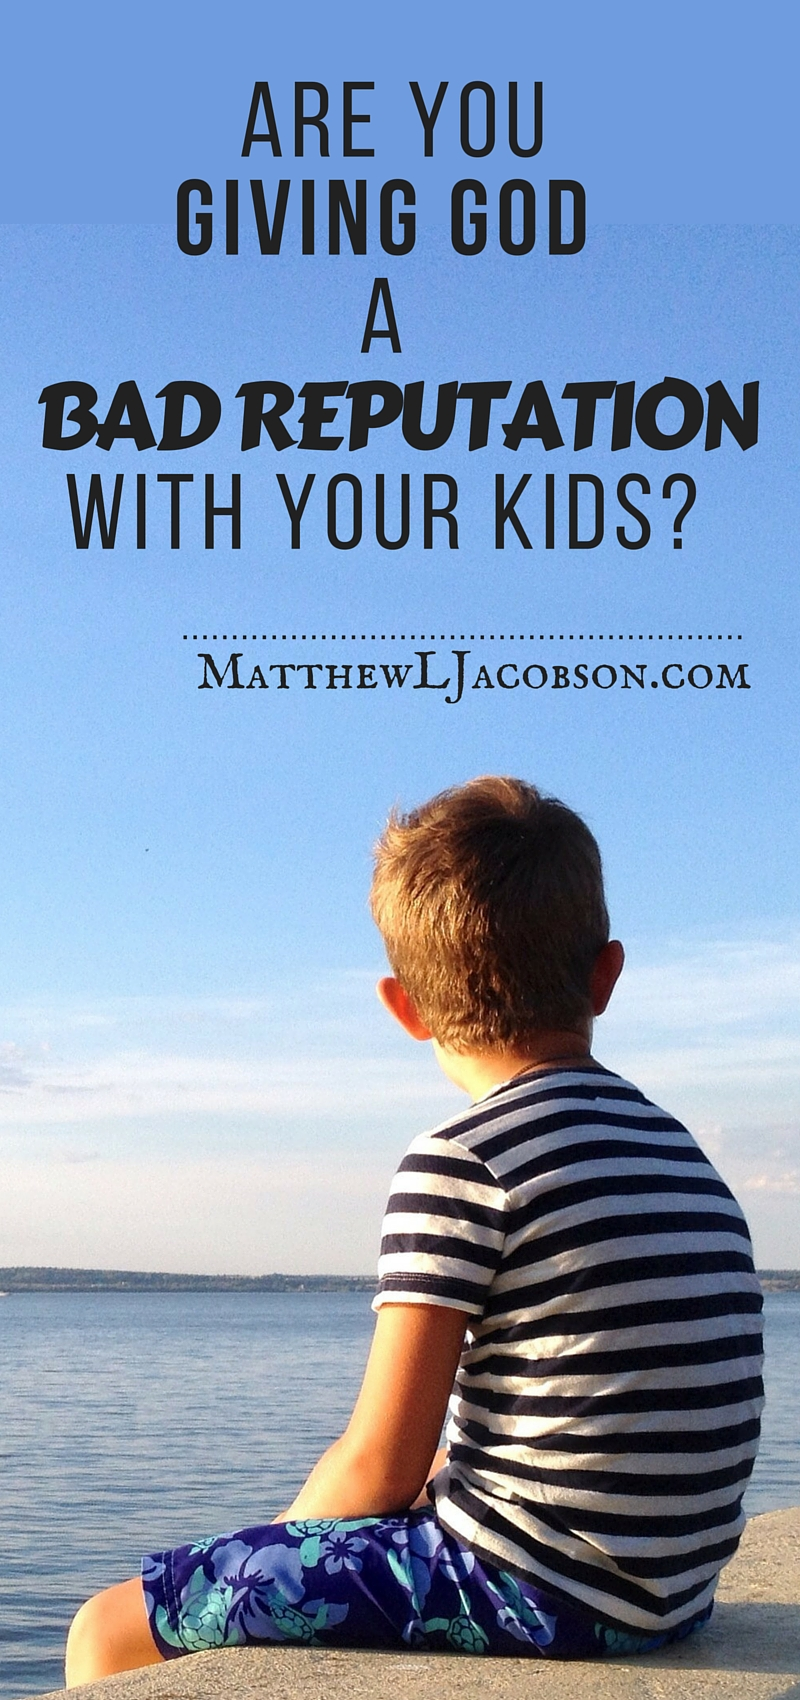 Are You Giving God a Bad Reputation With Your Kids? via @faithful_man